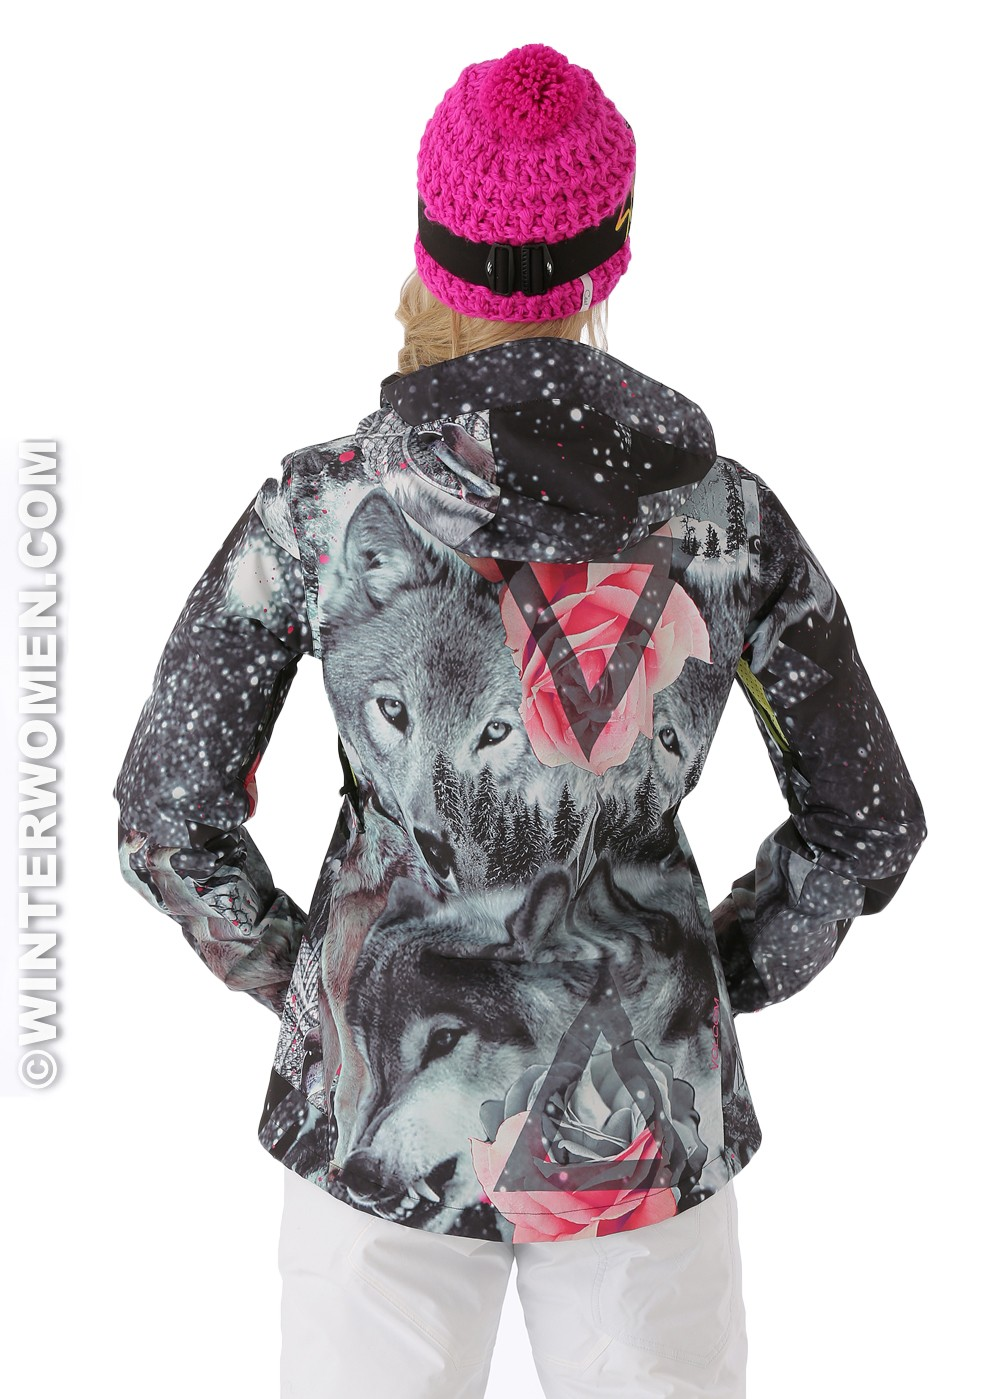 Volcom Women's Stone Jacket in Grey - Ski Fashion 2013-2014: Trends In Women's Ski And Snowboard Jackets